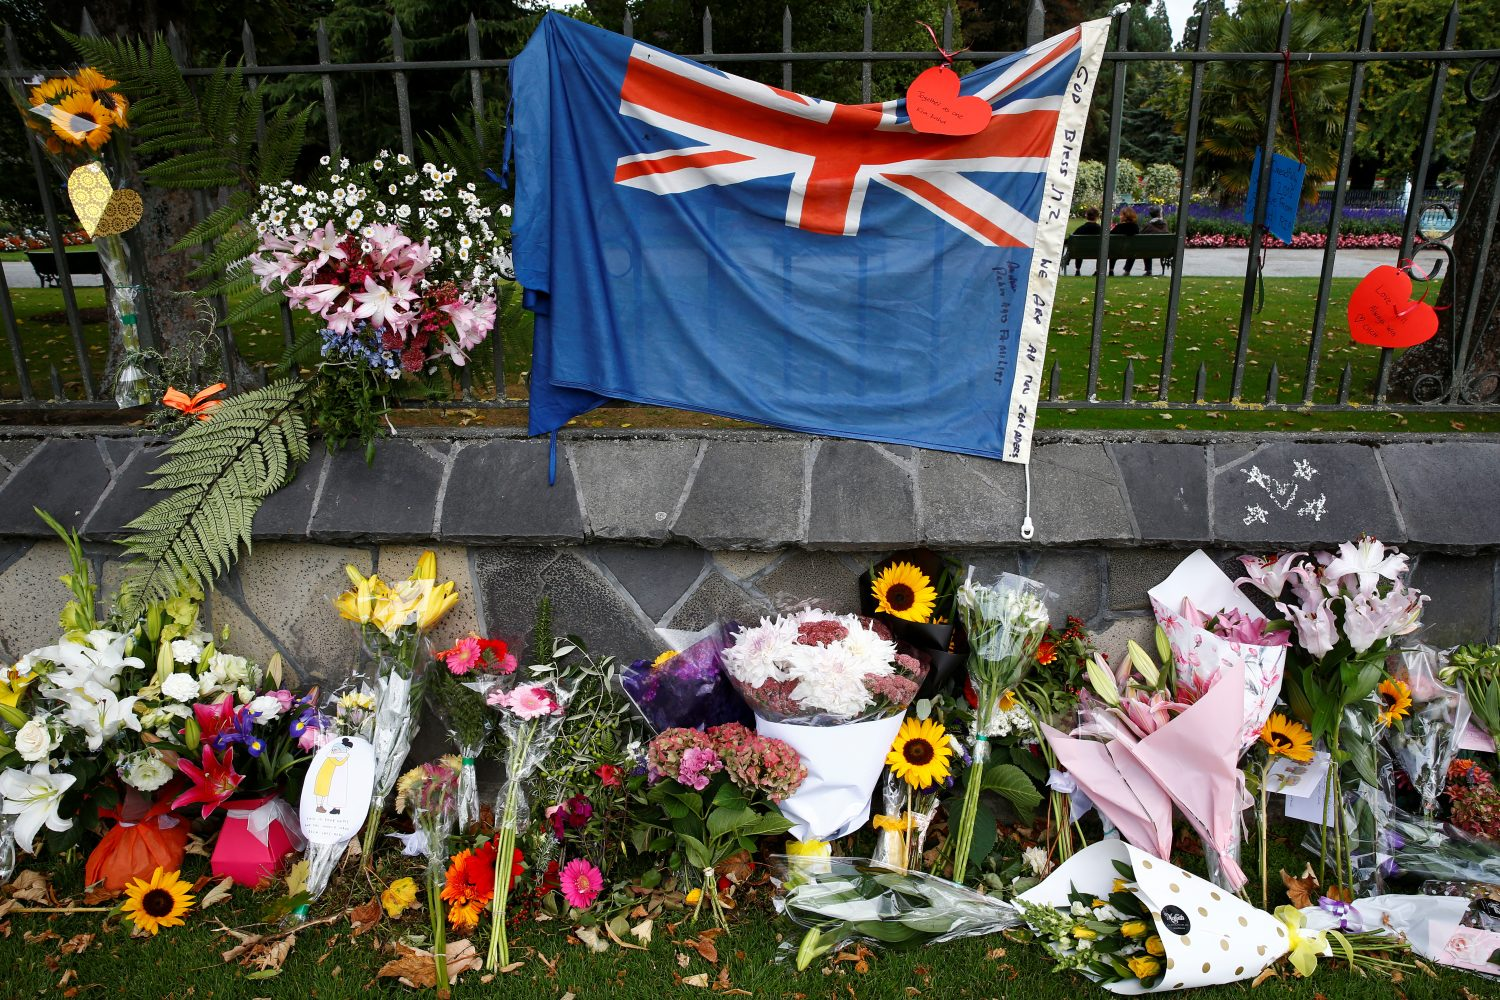 Flowers and a New Zealand national flag are seen at a memorial as tributes to victims of the mosque attacks near Linwood mosque in Christchurch, New Zealand, March 16, 2019. REUTERS/Edgar Su